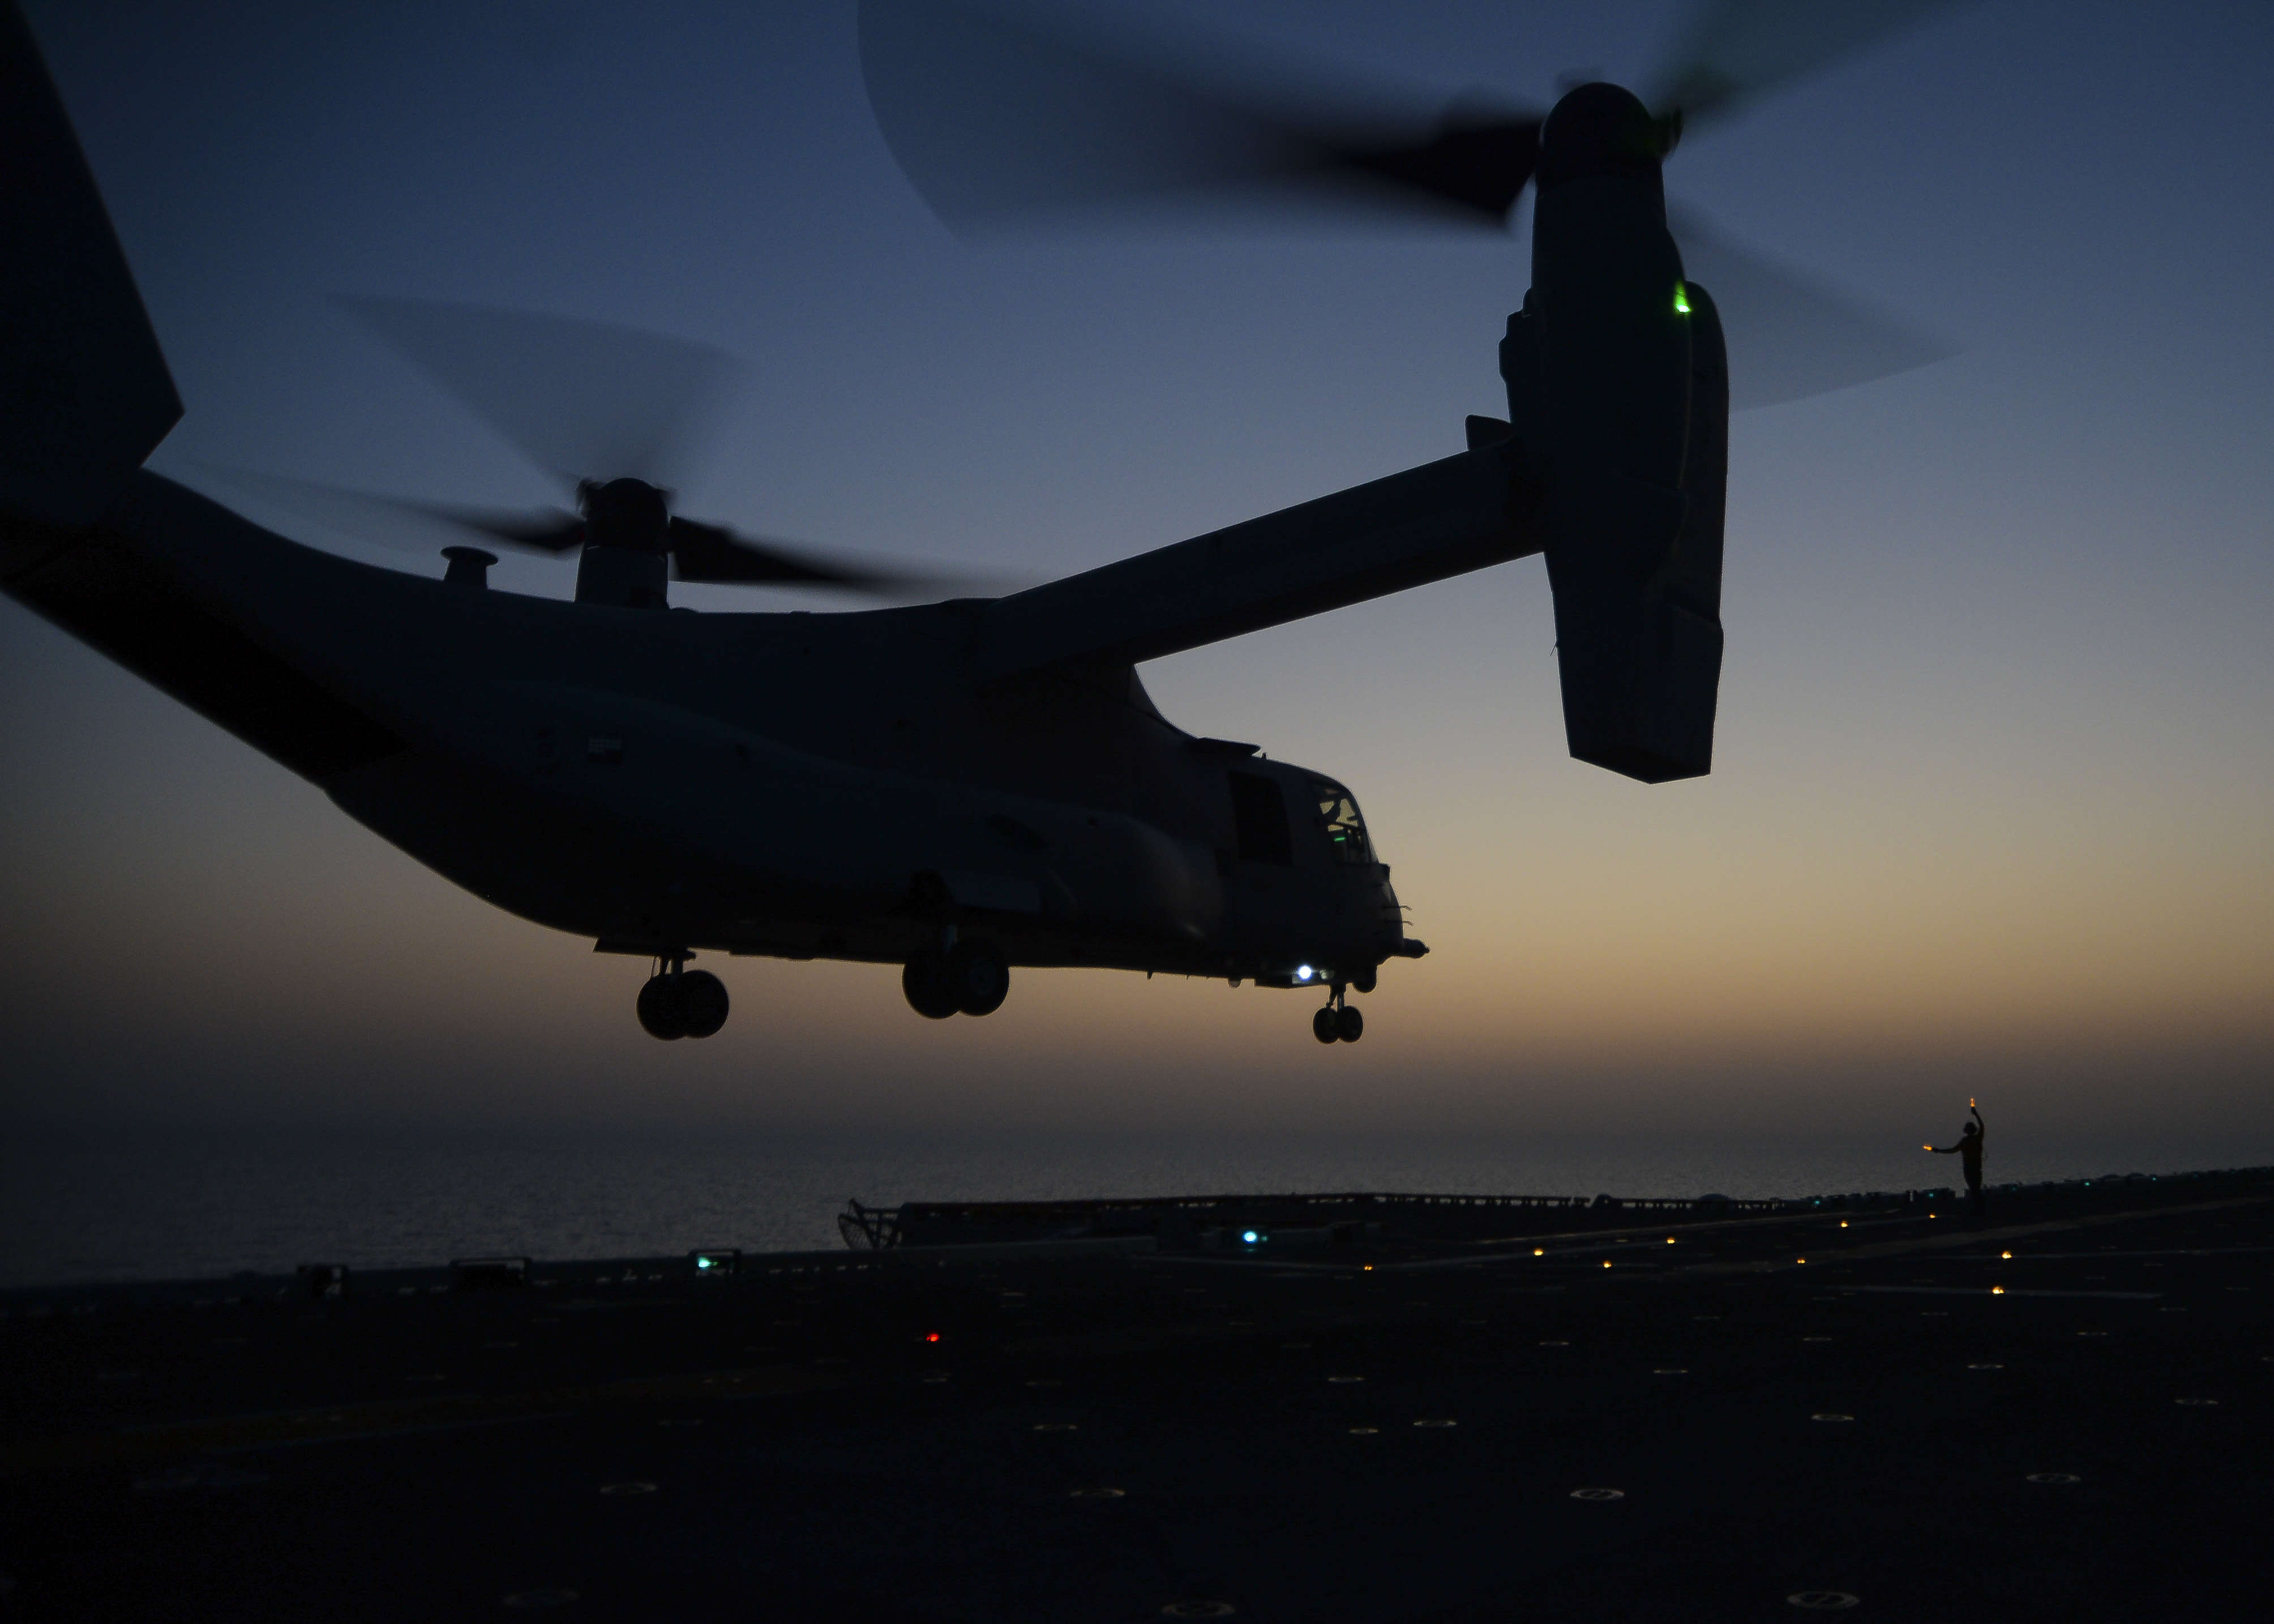 A V-22 lifts off from the USS Makin Island near Yemen in October 2014, just as SEALs did early Saturday in their effort to rescue U.S. hostage Luke Somers.